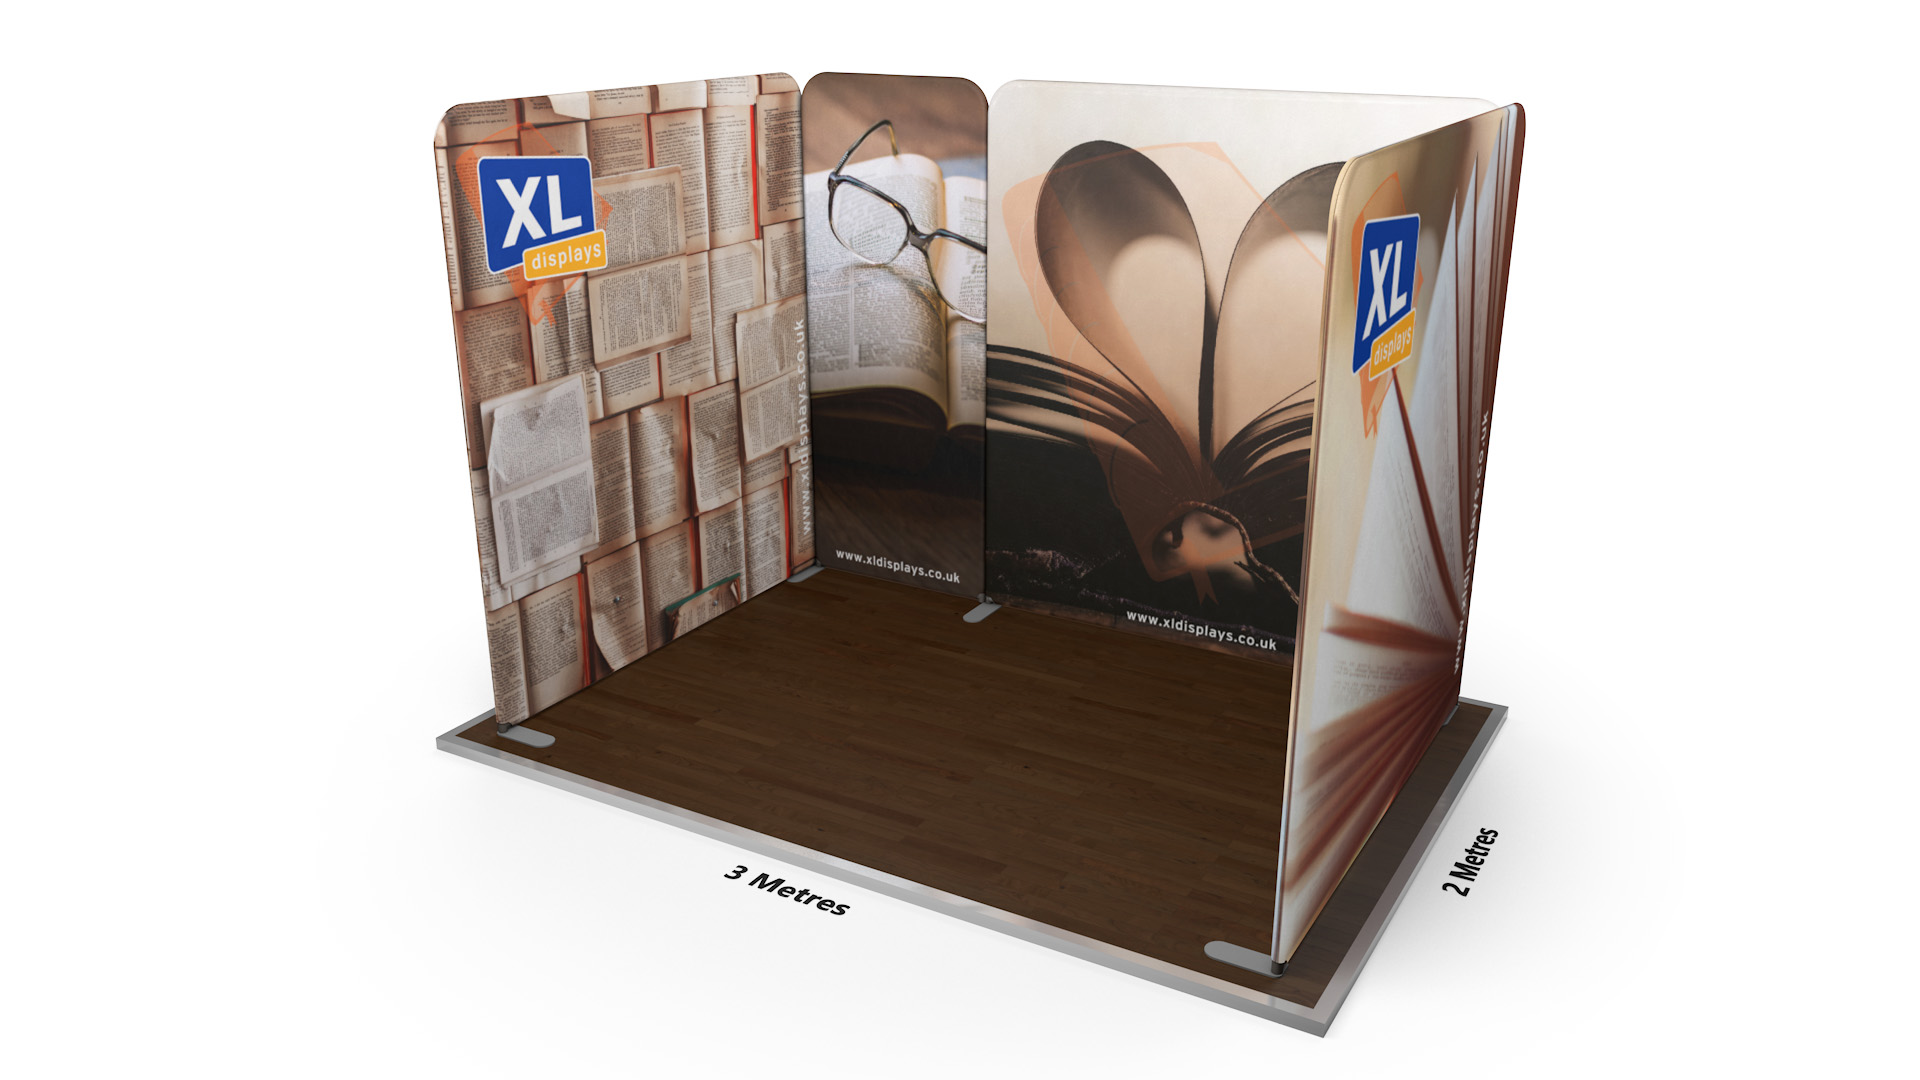 Modulate™ 3m x 2m U-Shaped Fabric Display Stand